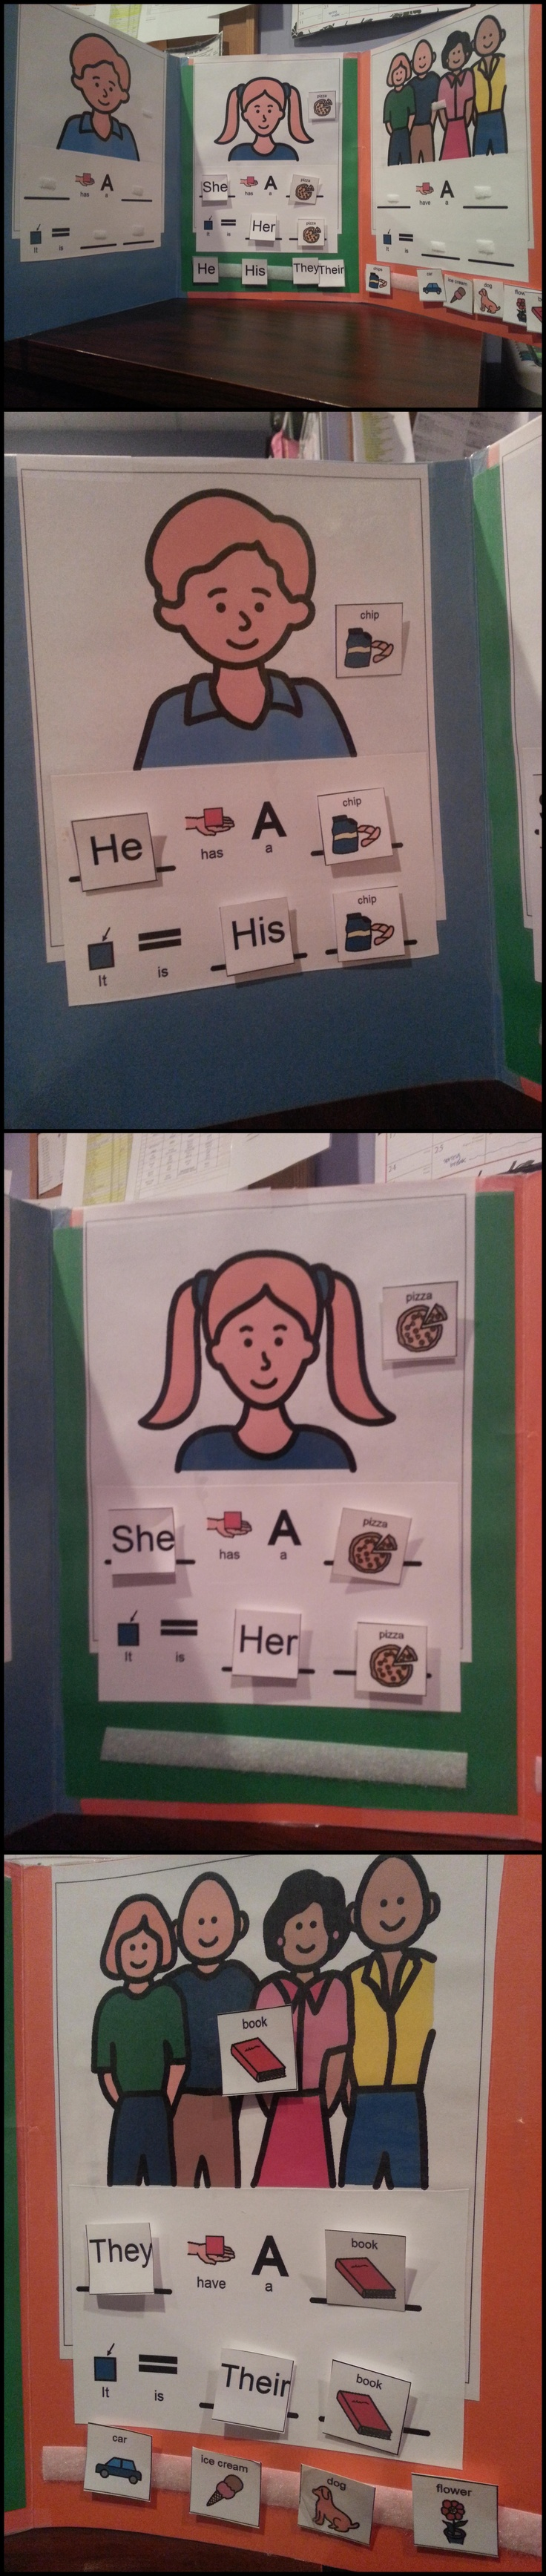 Target: pronouns (he, she, they and his, her, their). Tape 2 file folders together, overlapping in the middle, creating three sections. Place a picture of a boy, girl, and people to practice each pronoun. Create the sentence strip and add under each picture. Laminate. Print each pronoun word and various images on separate tiles to move around to each picture creating various sentences. Add velcro to each sentence strip and at the bottom to store extra picture/word tiles.